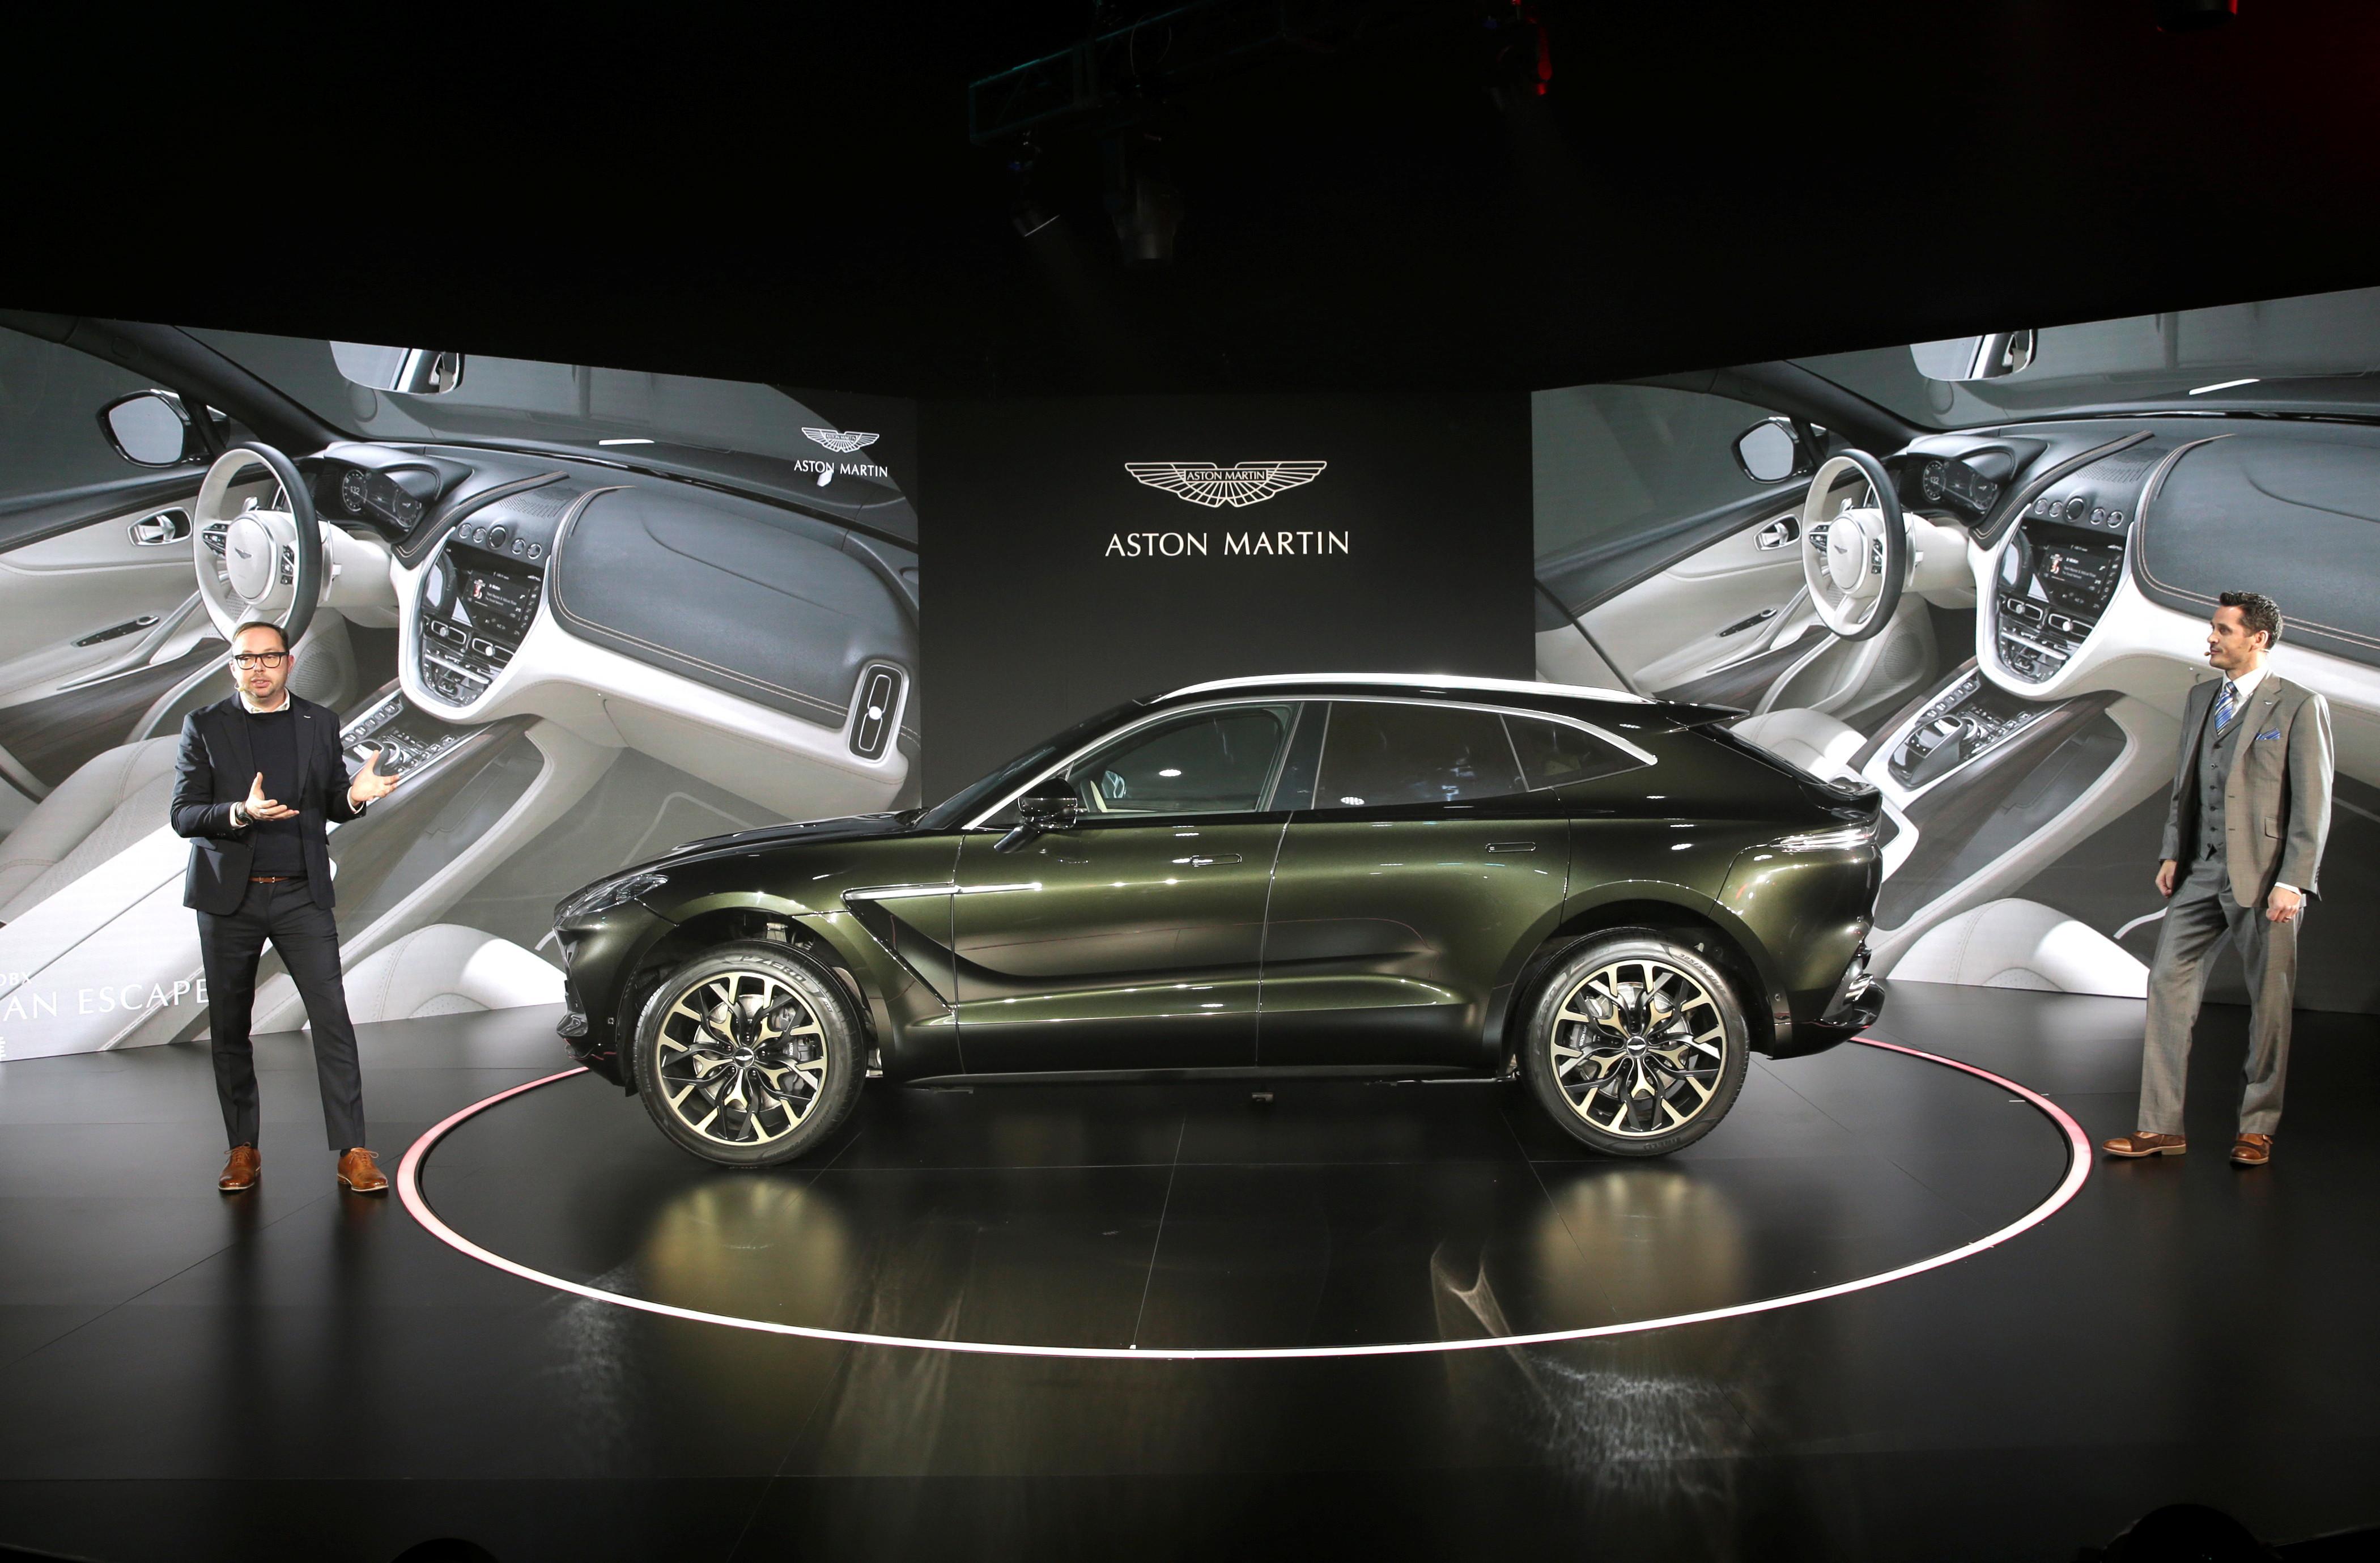 Aston Martin DBX, the company's first sport utility vehicle, is displayed at its global launch ceremony in Beijing, China November 20, 2019. REUTERS/Jason Lee